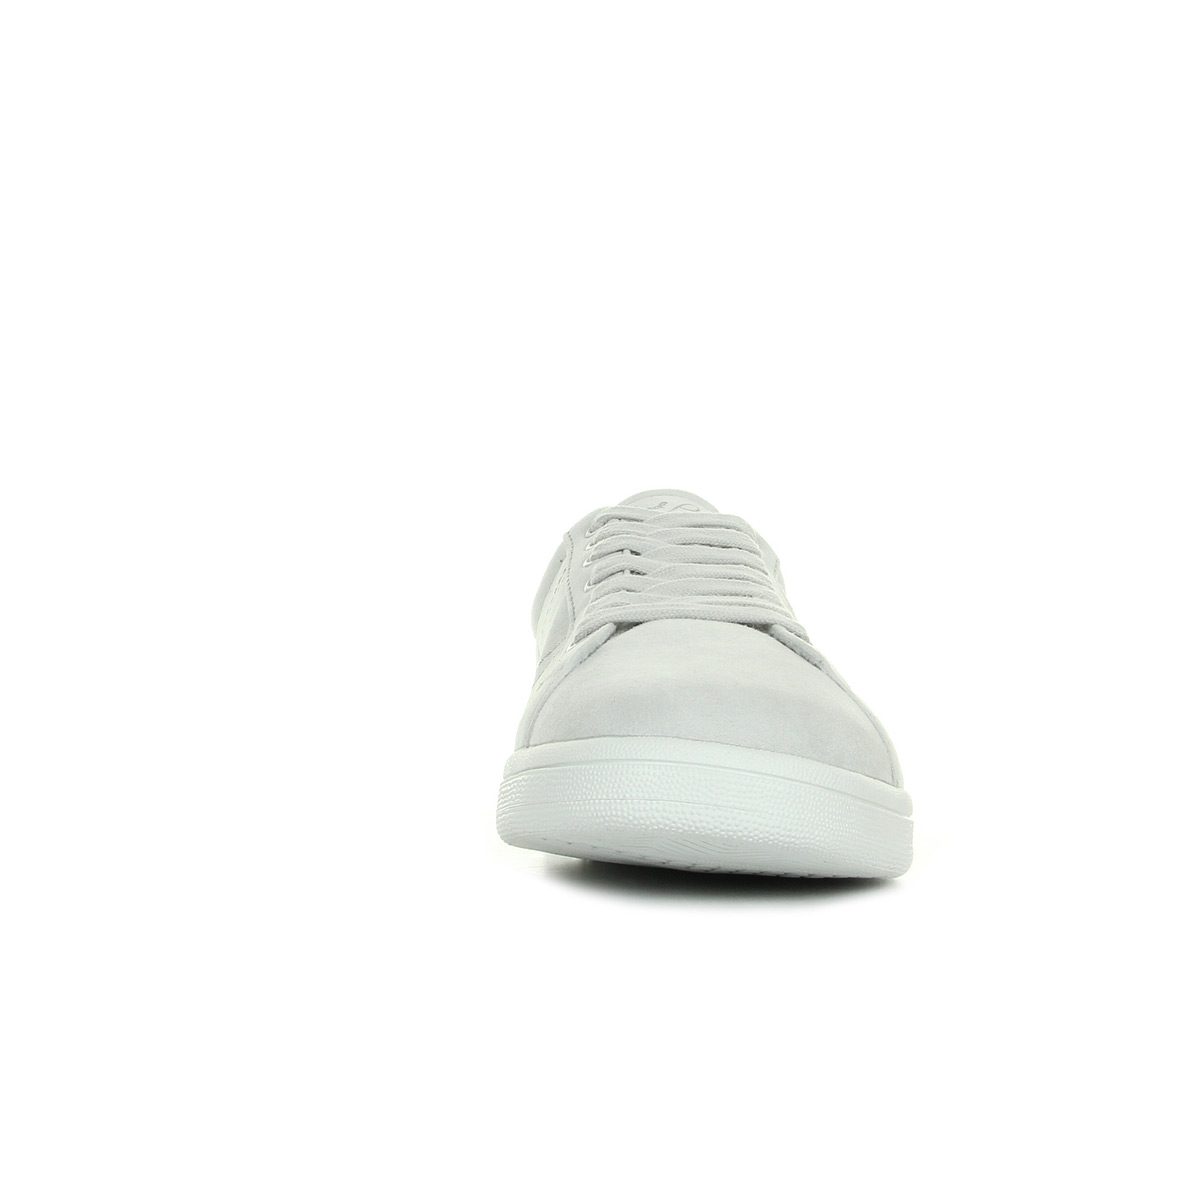 Fred Perry B721 Brushed Cotton B2002870, Baskets mode homme